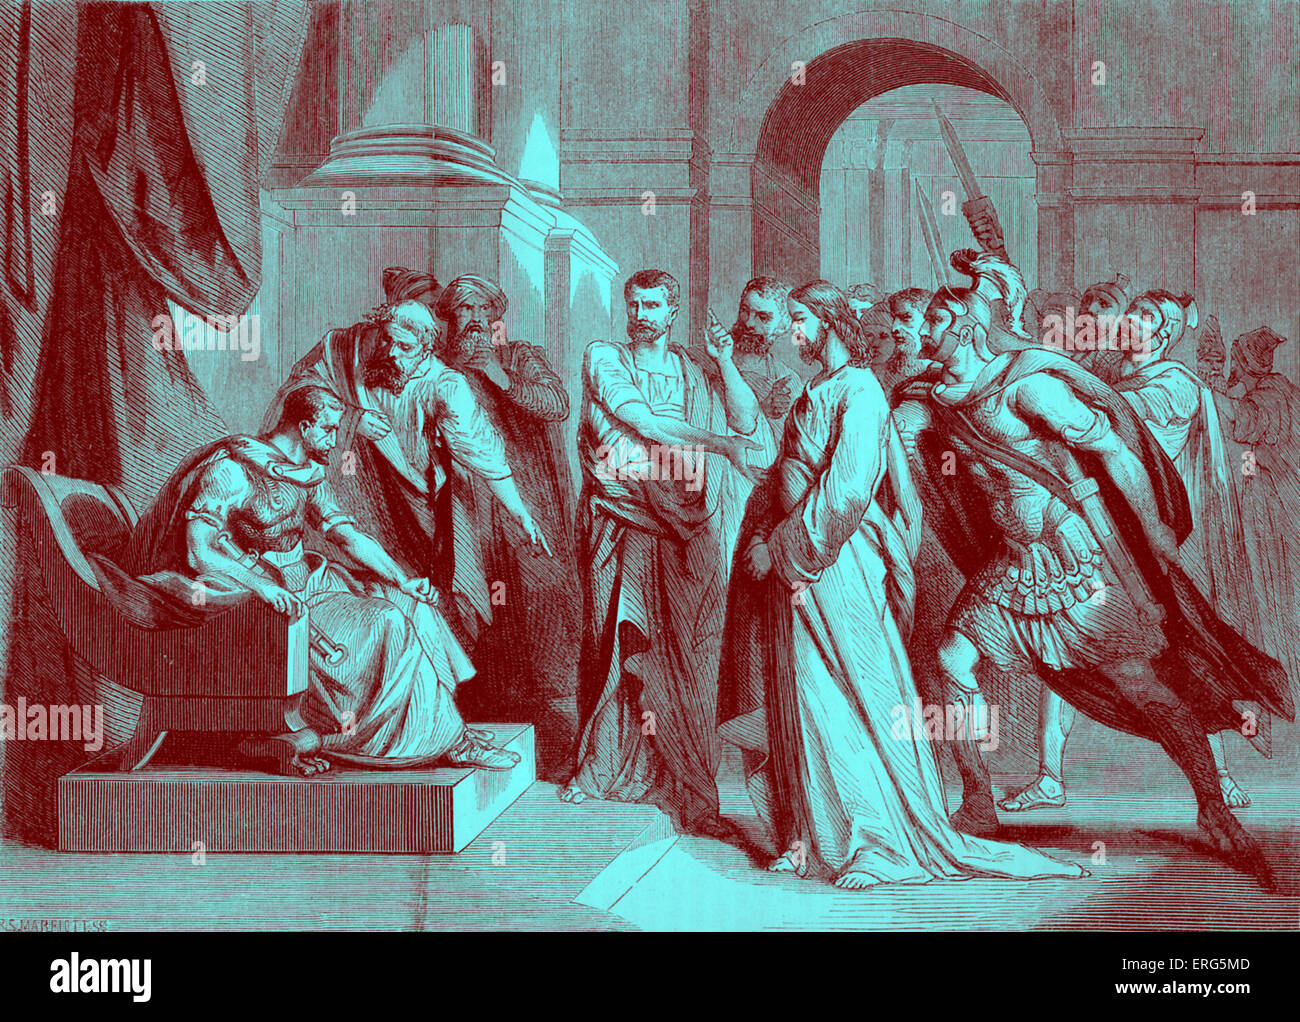 Christ Before Pilate High Resolution Stock Photography and Images - Alamy